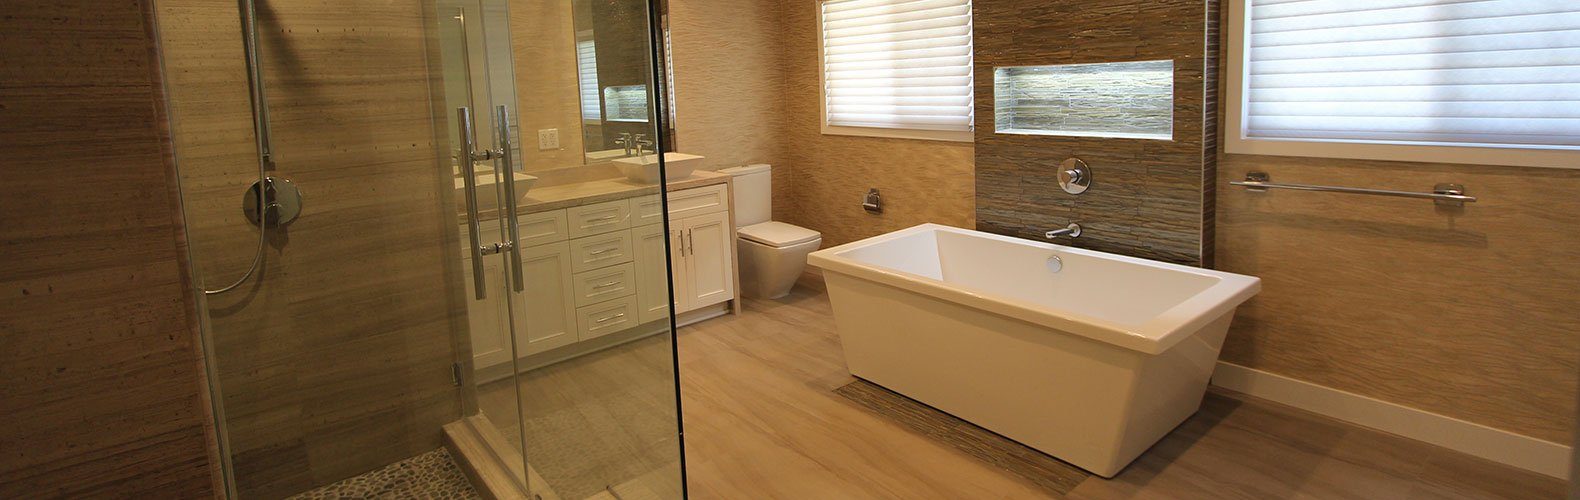 Bathroom remodeling in los angeles ca for Bathroom remodeling contractor los angeles